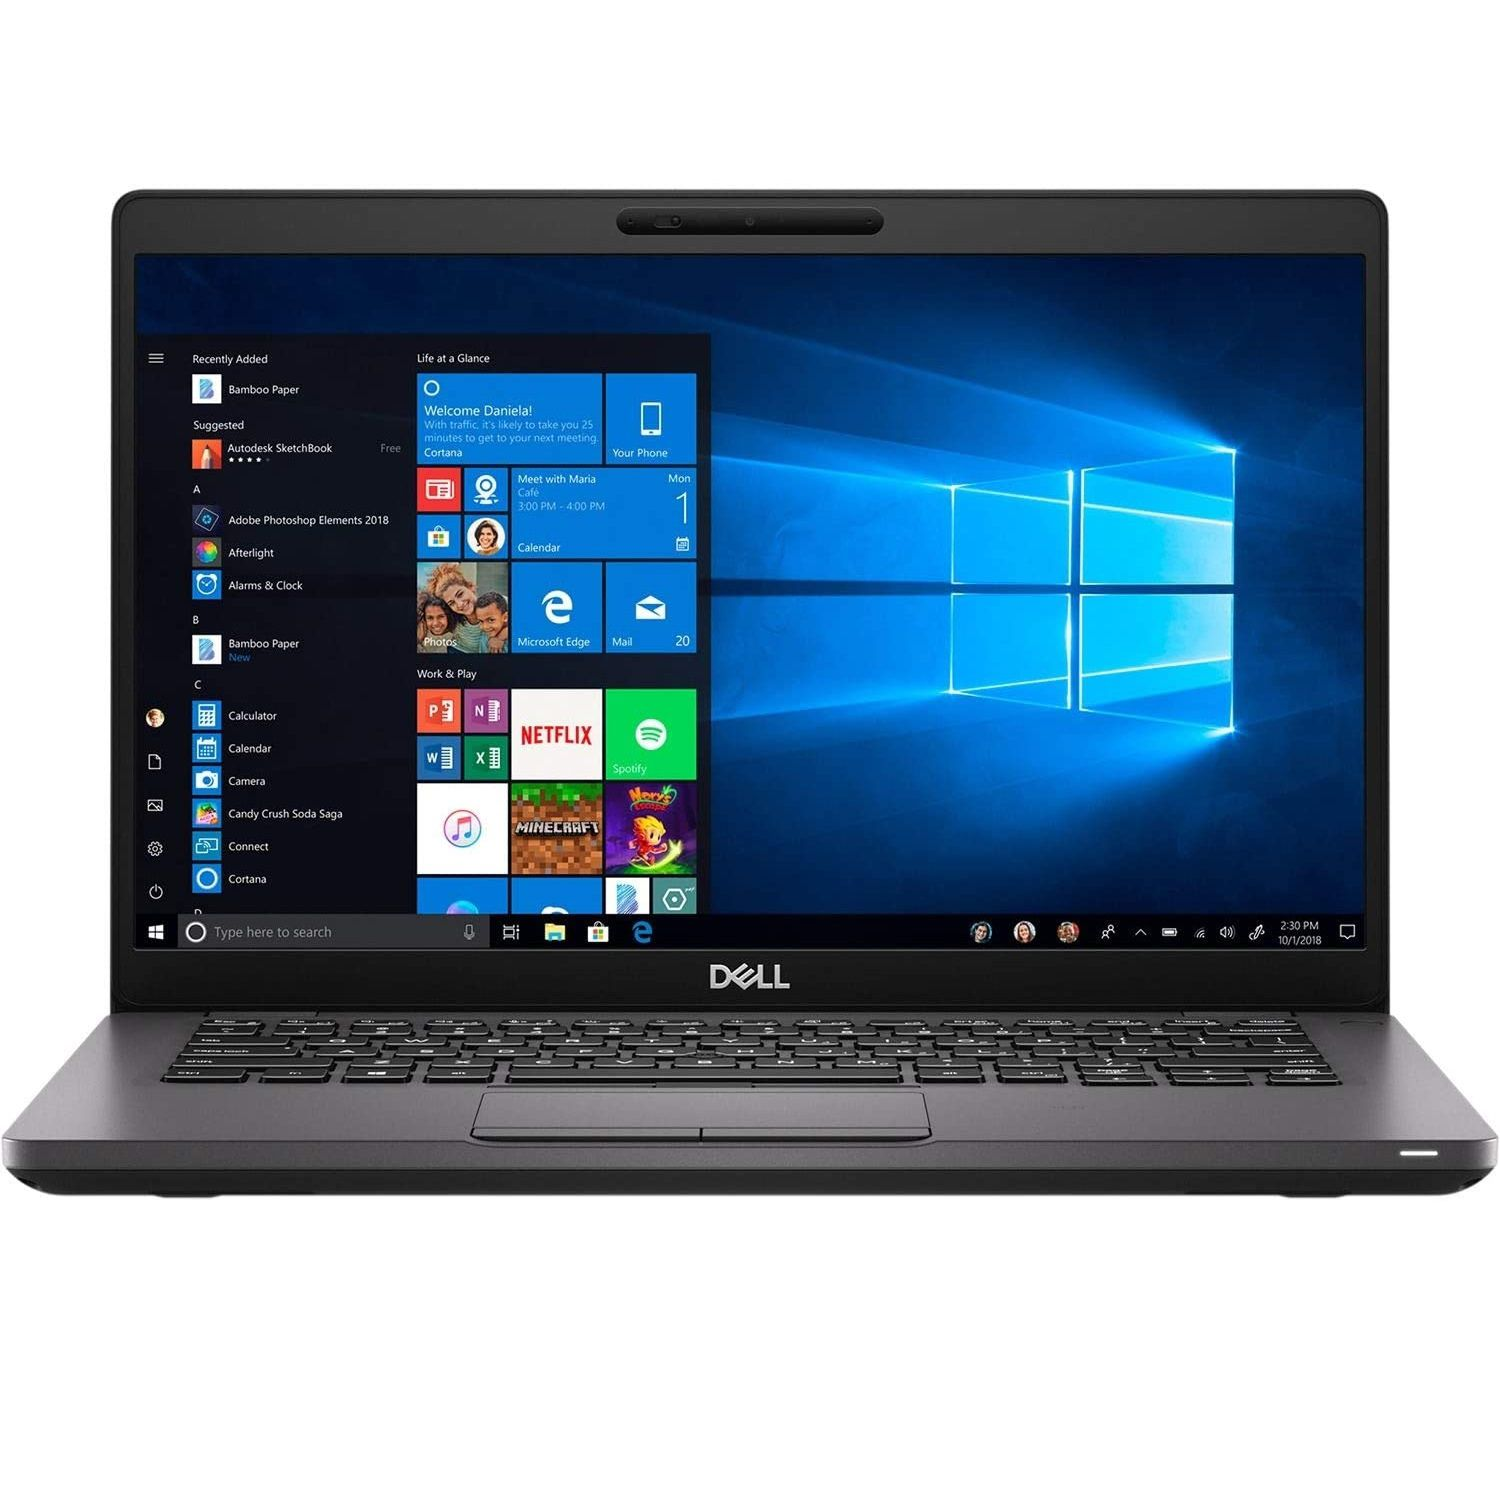 DELL LATITUDE 5400 Business Laptop